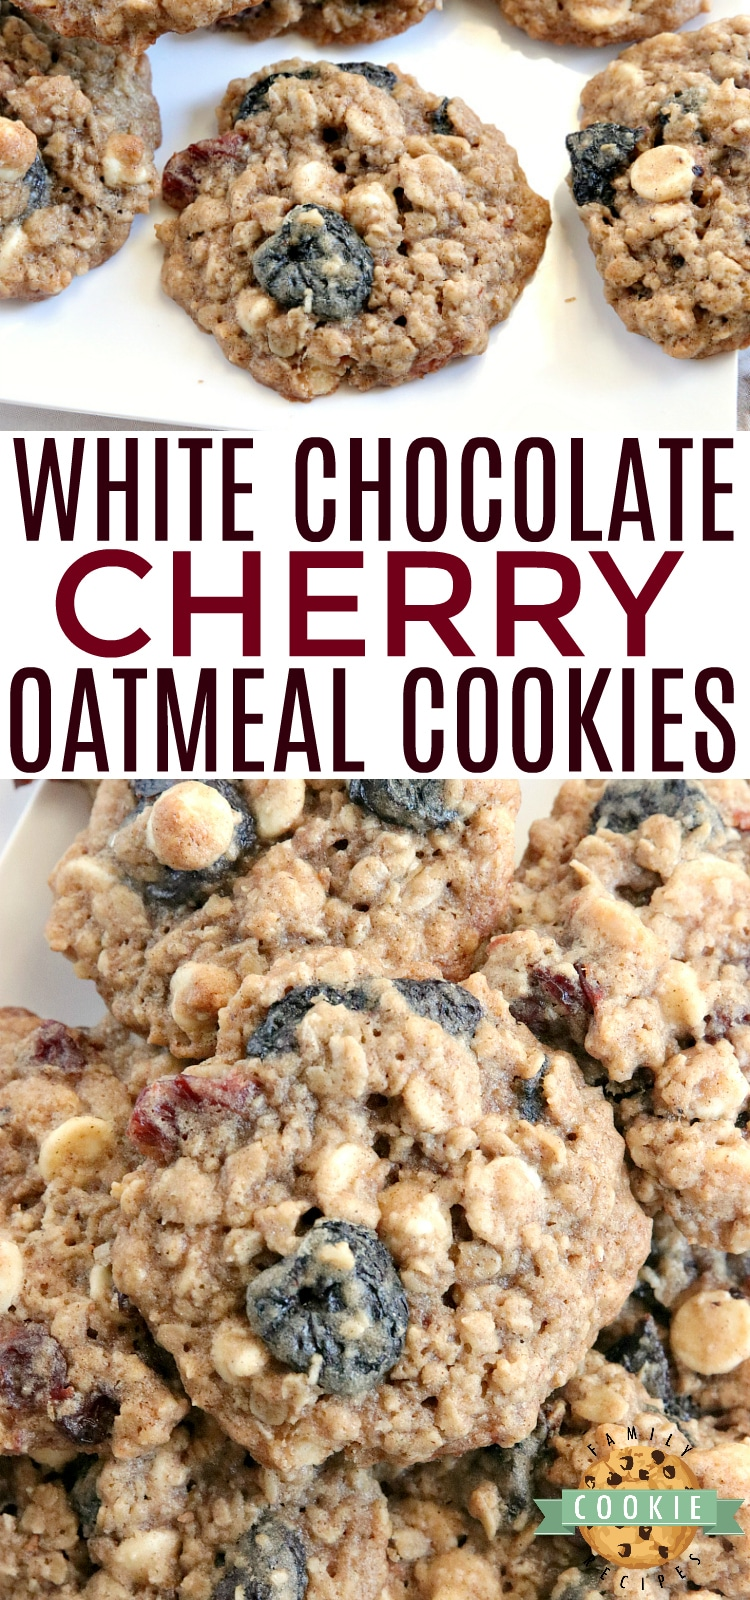 White Chocolate Cherry Oatmeal Cookies are made by adding white chocolate chips and dried cherries to the most amazing oatmeal cookie recipe ever! These cookies are soft and chewy and the flavors are incredible. via @familycookierecipes